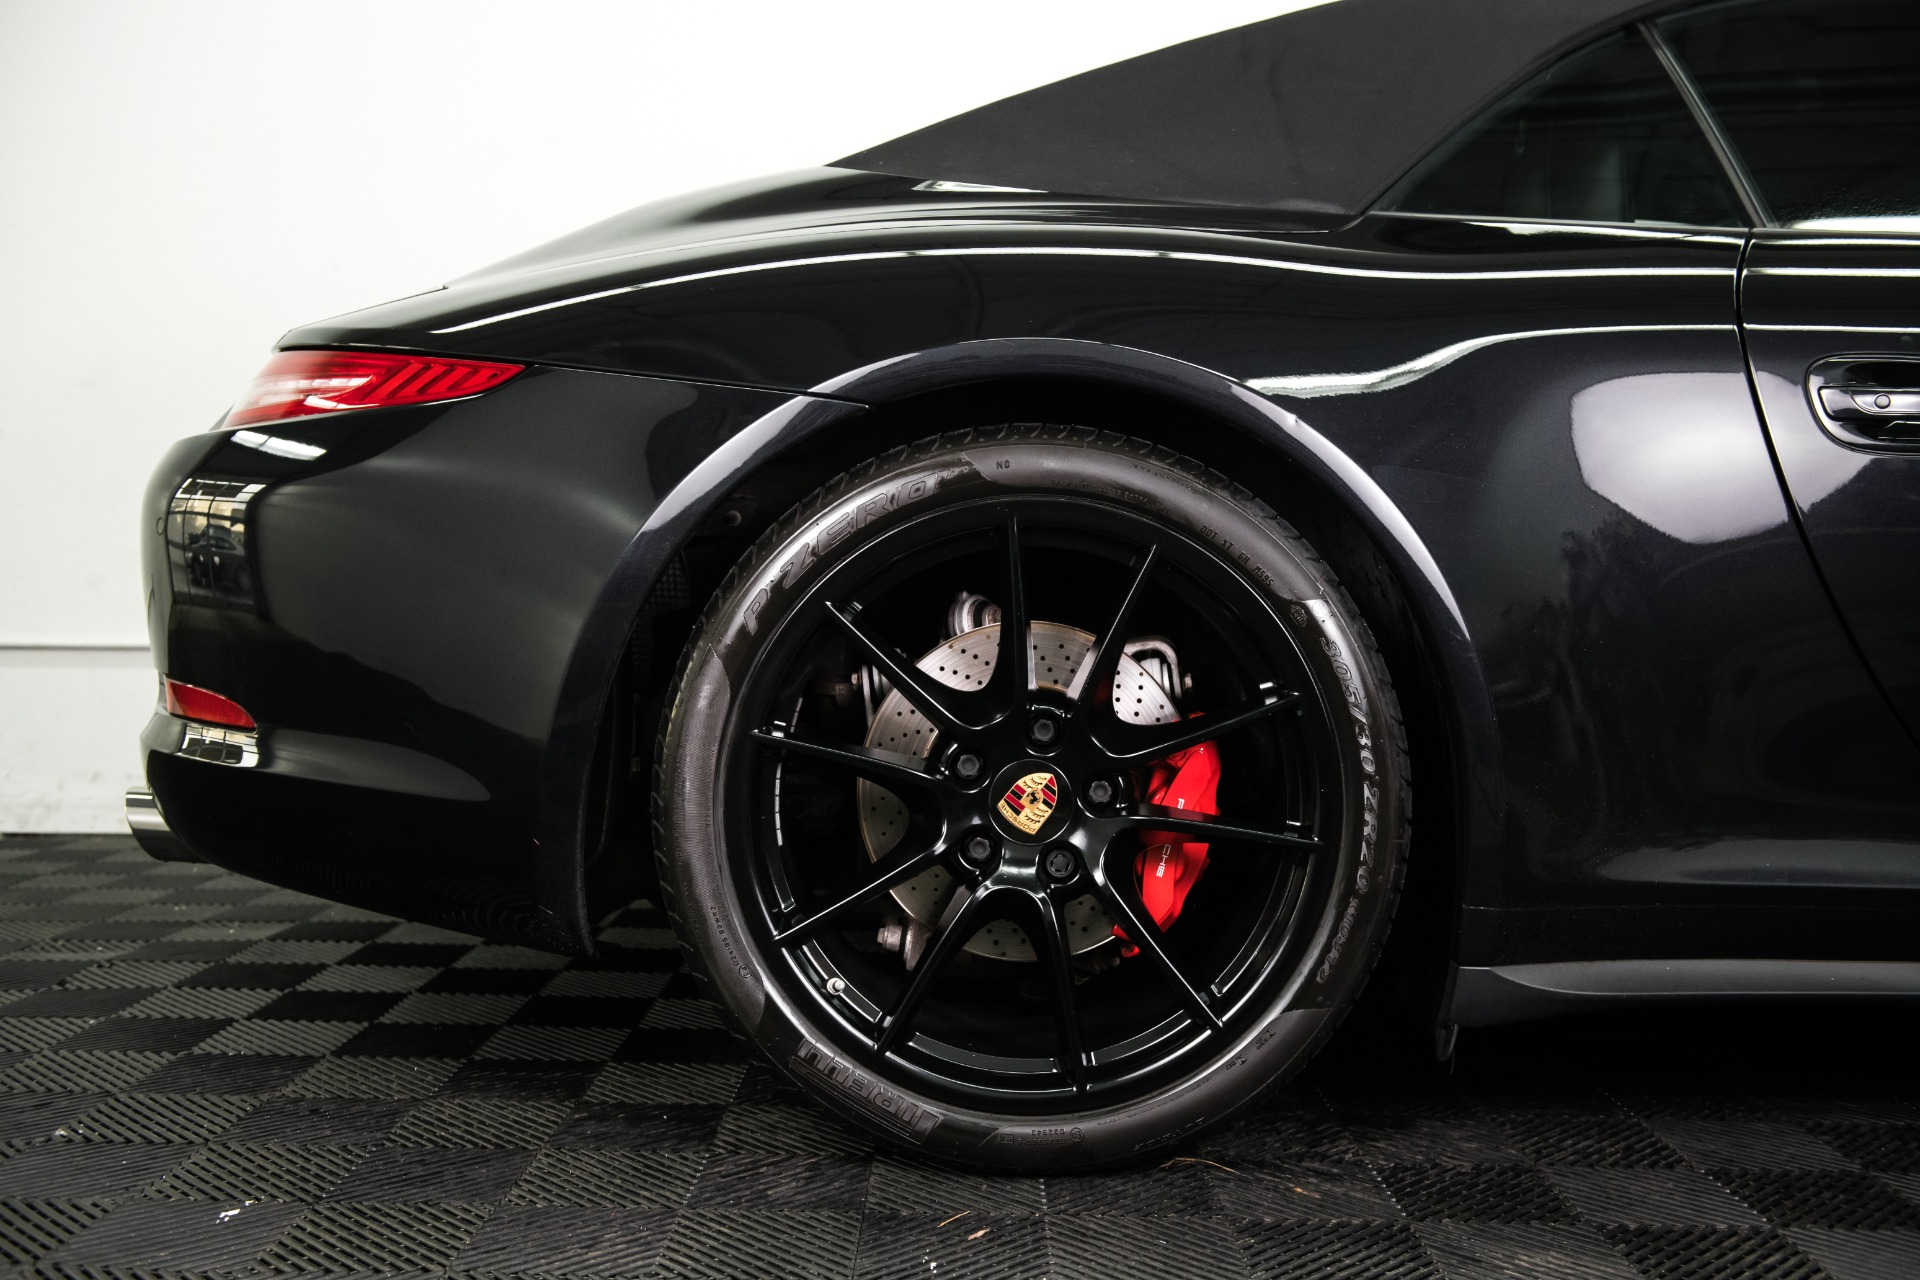 Used 2014 Porsche 911 Carrera 4S Used 2014 Porsche 911 Carrera 4S for sale Sold at Response Motors in Mountain View CA 8